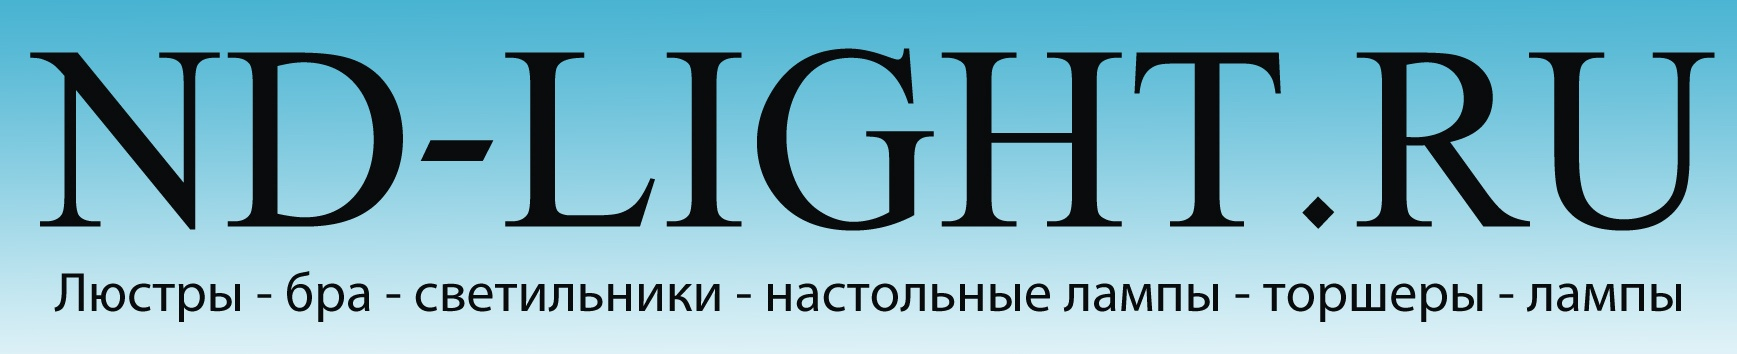 ND-LIGHT.RU